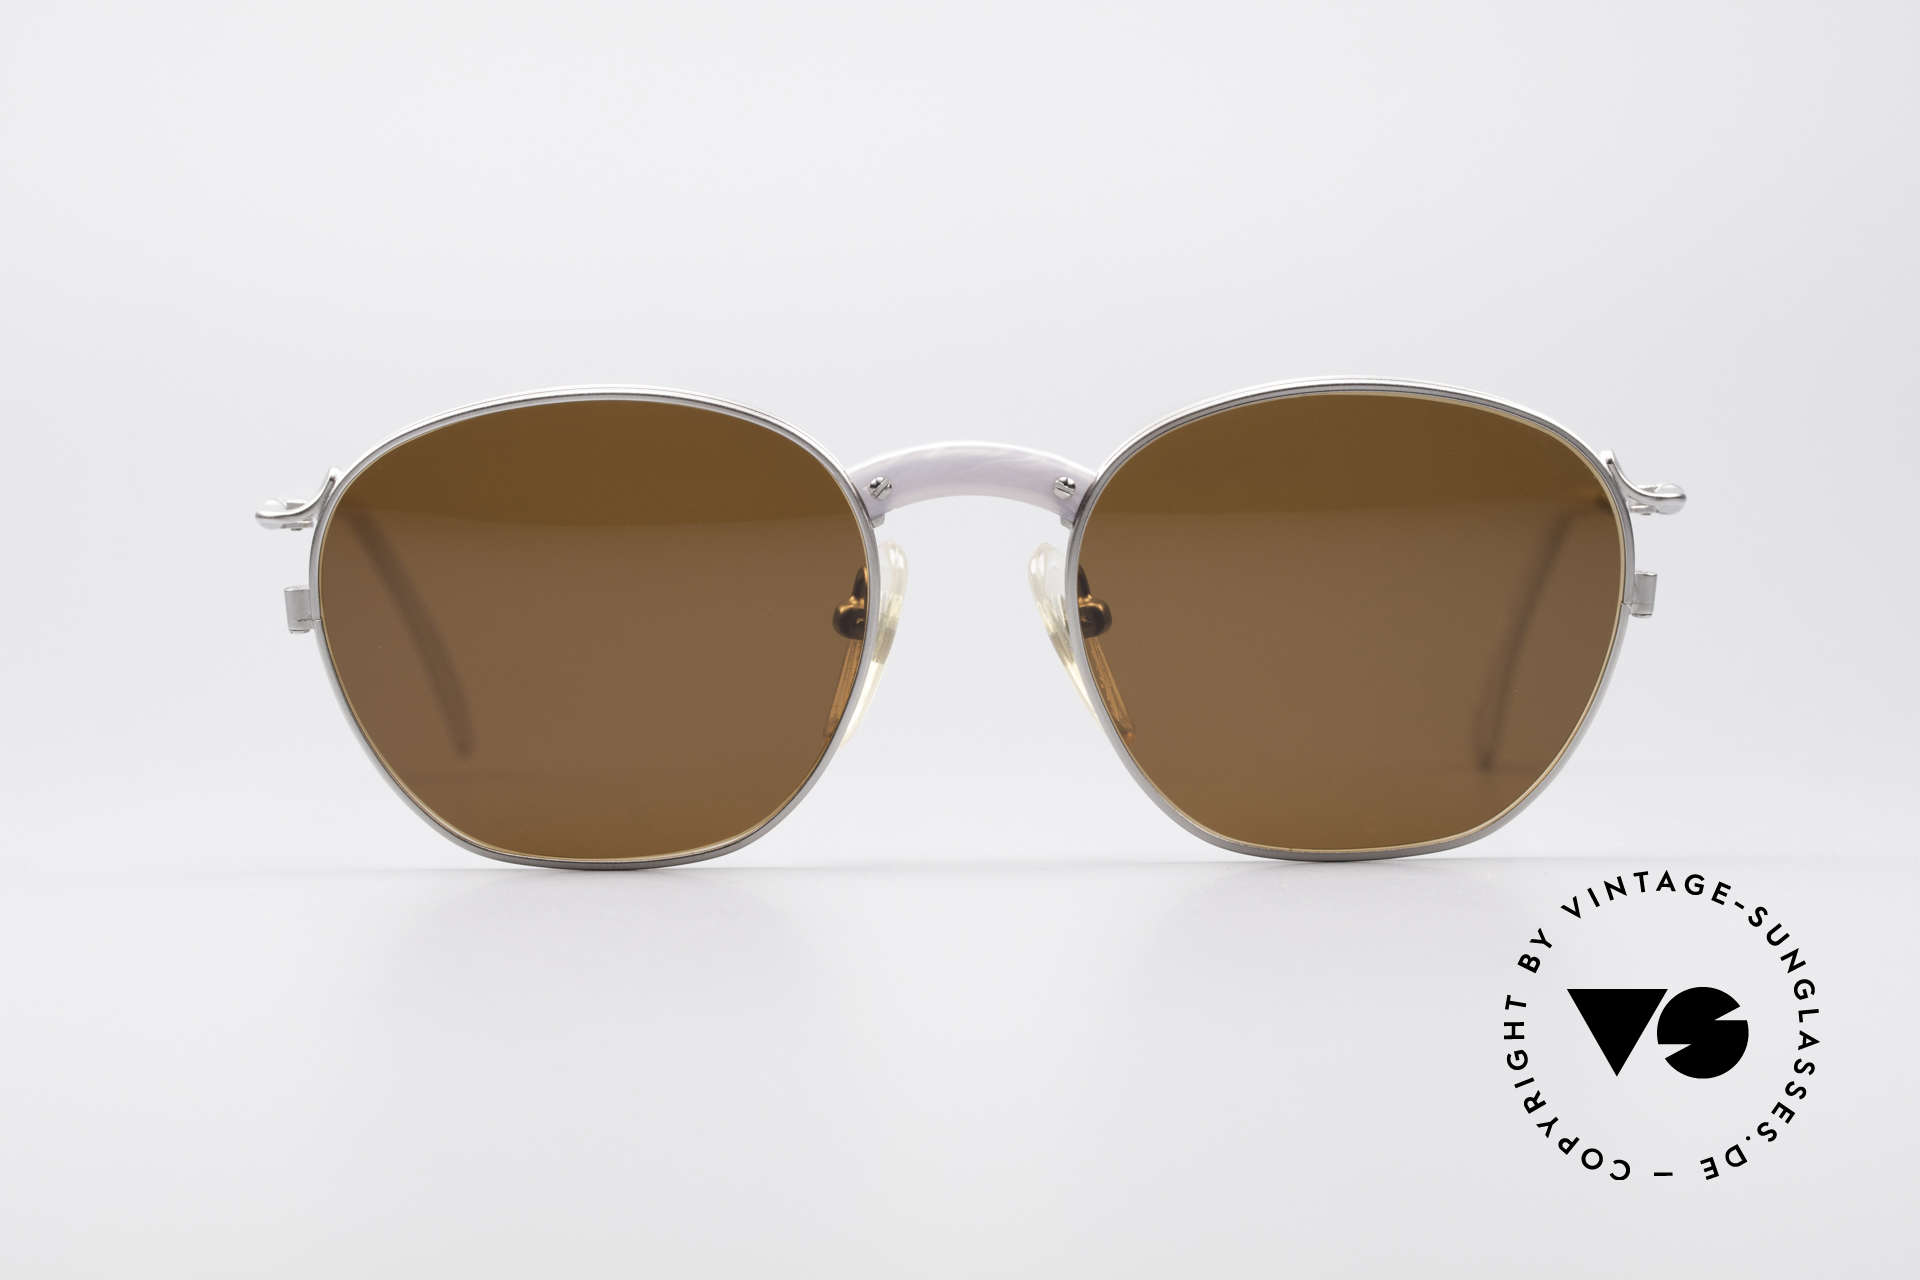 Jean Paul Gaultier 55-1271 JPG Vintage Sunglasses, lightweight (titan) frame and very pleasant to wear, Made for Men and Women